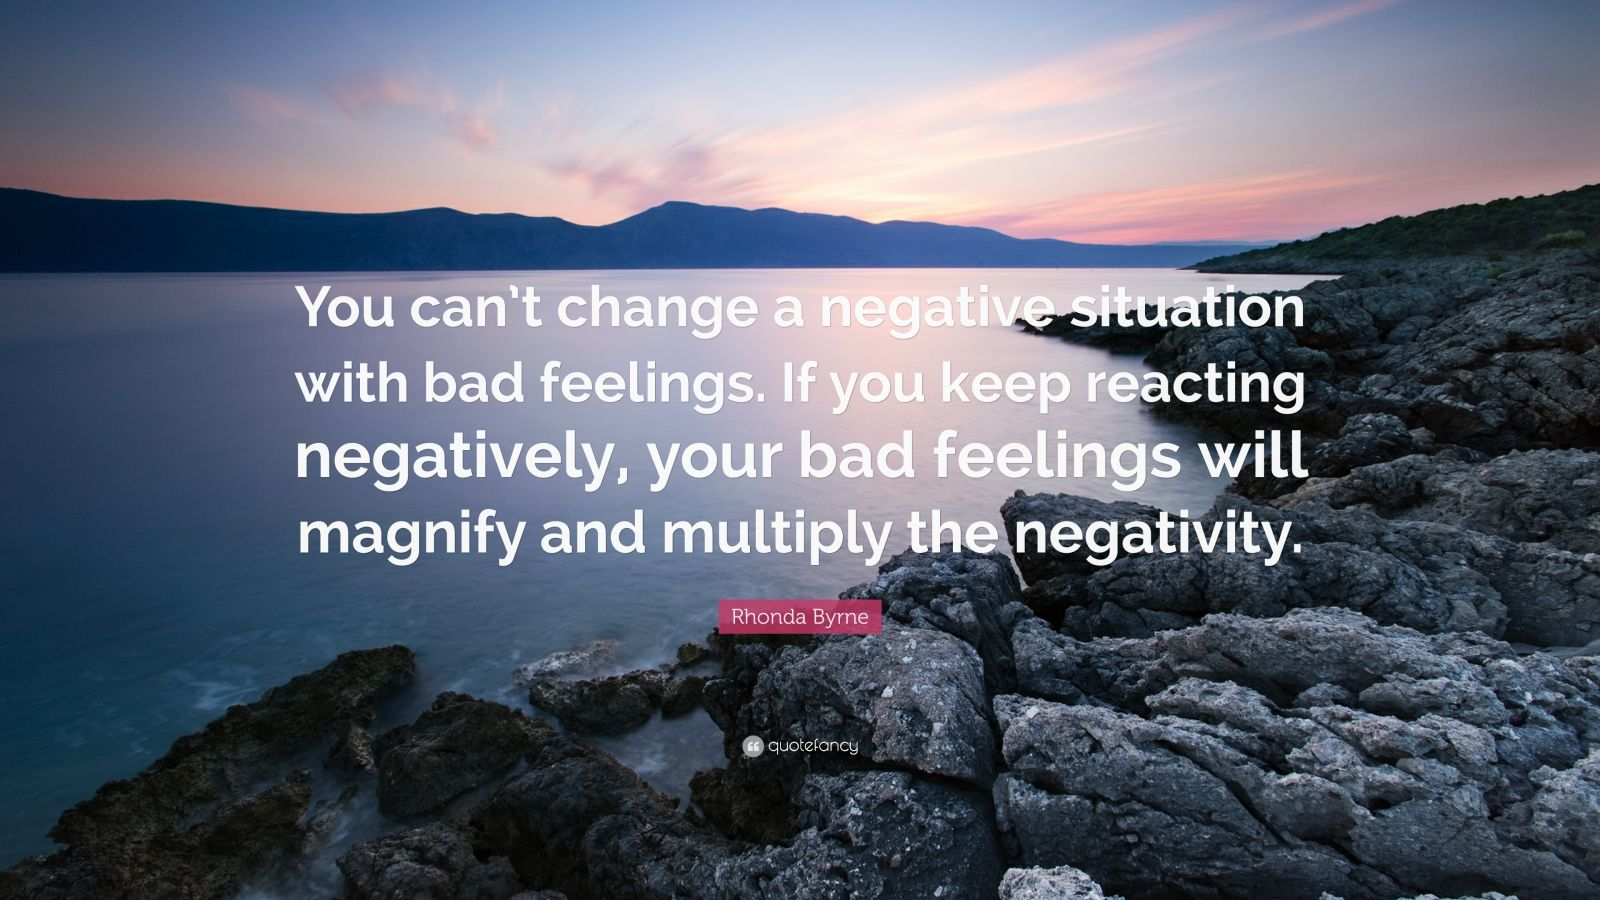 """Rhonda Byrne Quote: """"You can't change a negative situation with bad feelings. If you keep reacting negatively, your bad feelings will magnify and multiply the negativity."""""""